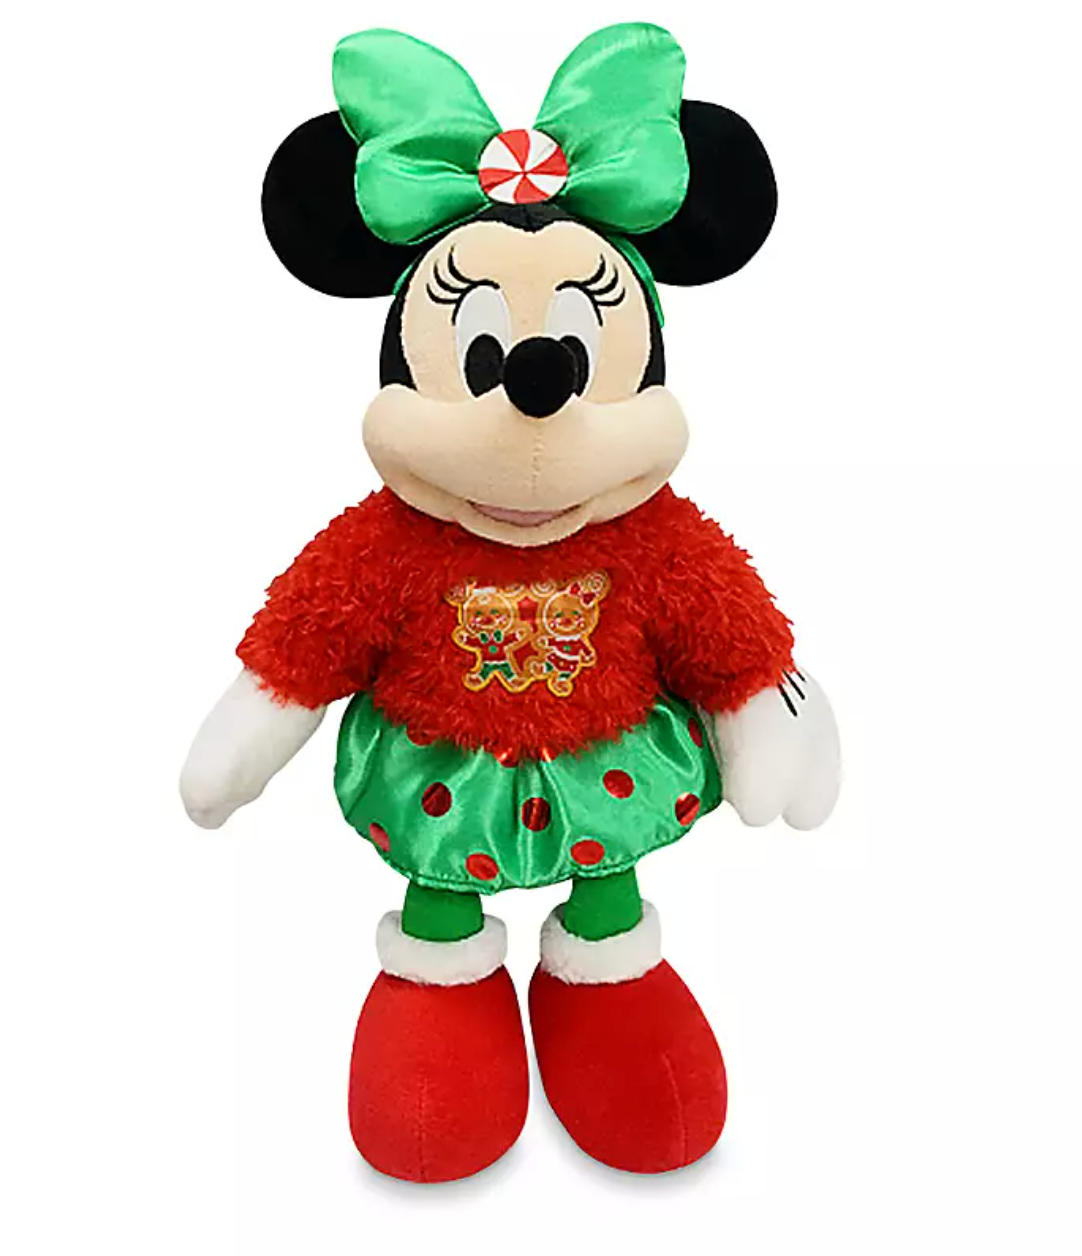 Disney Minnie Mouse Holiday Christmas Medium Plush Soft Toy brand new with tag